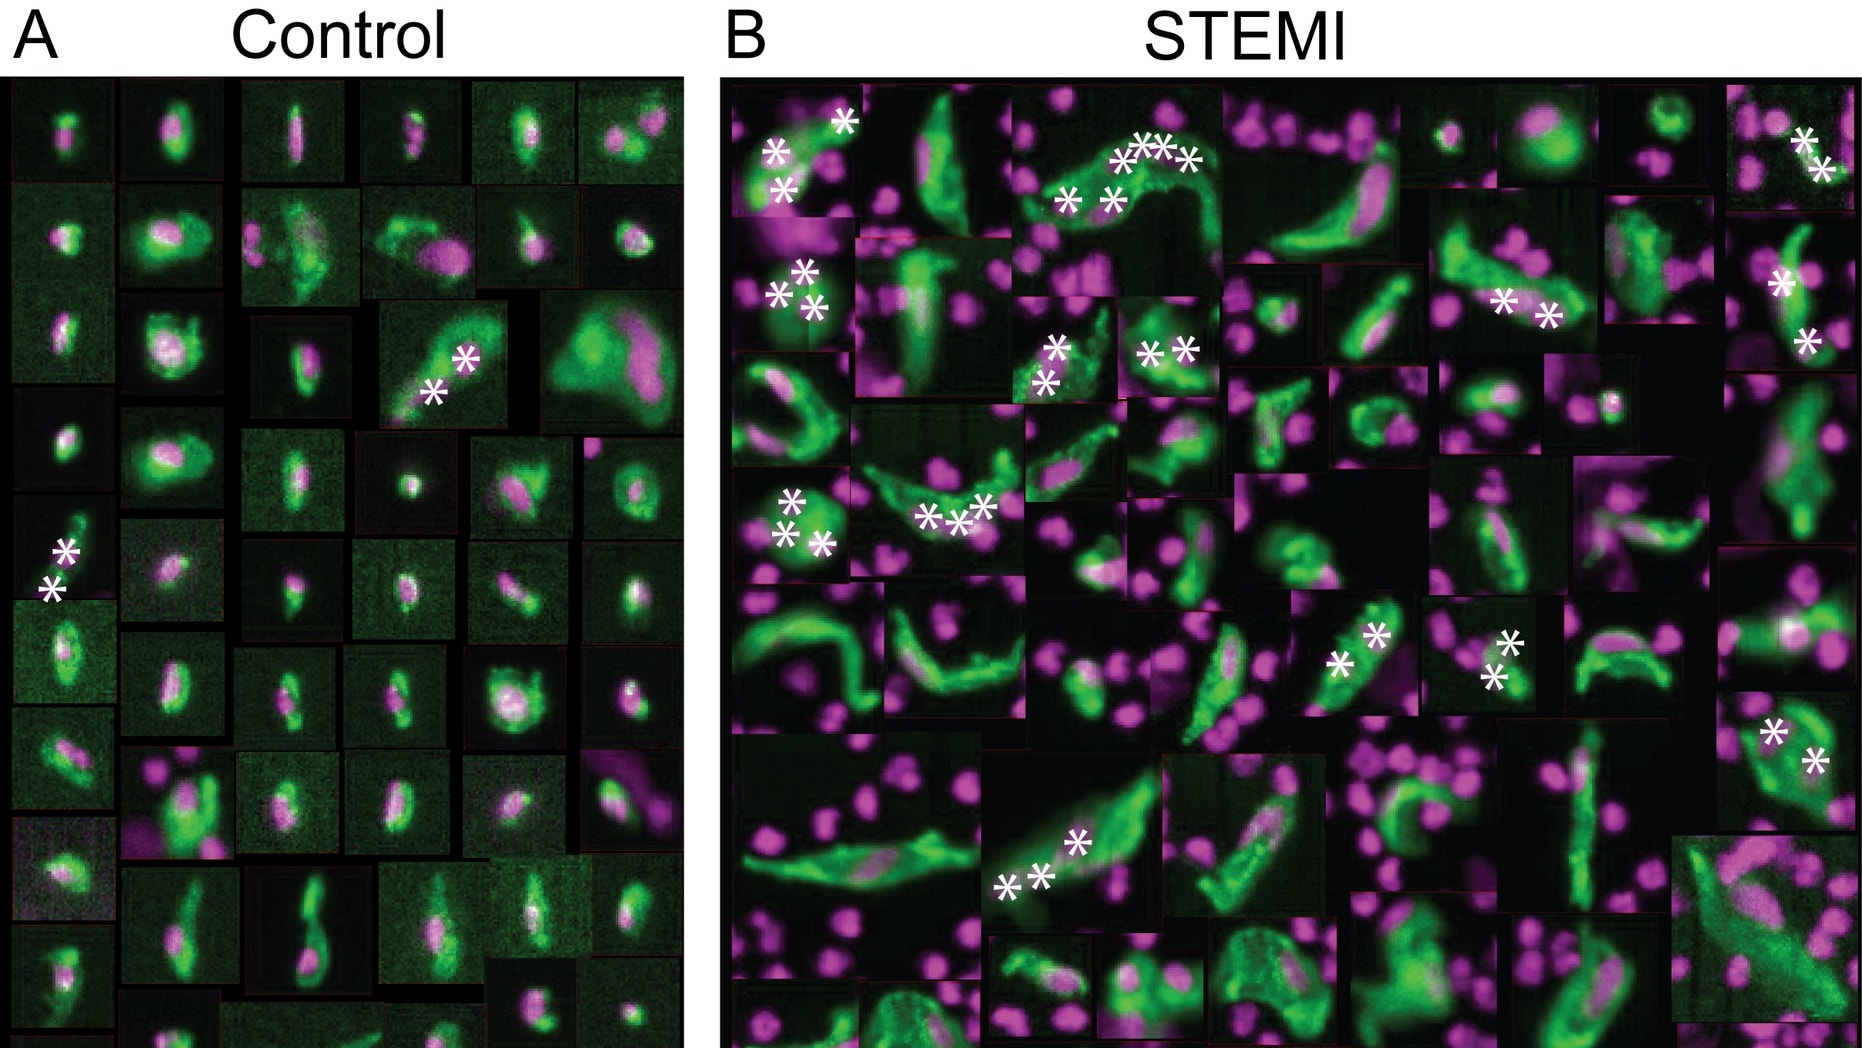 On the left are normal, healthy cells that line the coronary artery -- also known as circulating endothelial cells (CEC). On the right are CECs from heart attack patients which appear abnormally large, misshapen and with multiple nuclei.